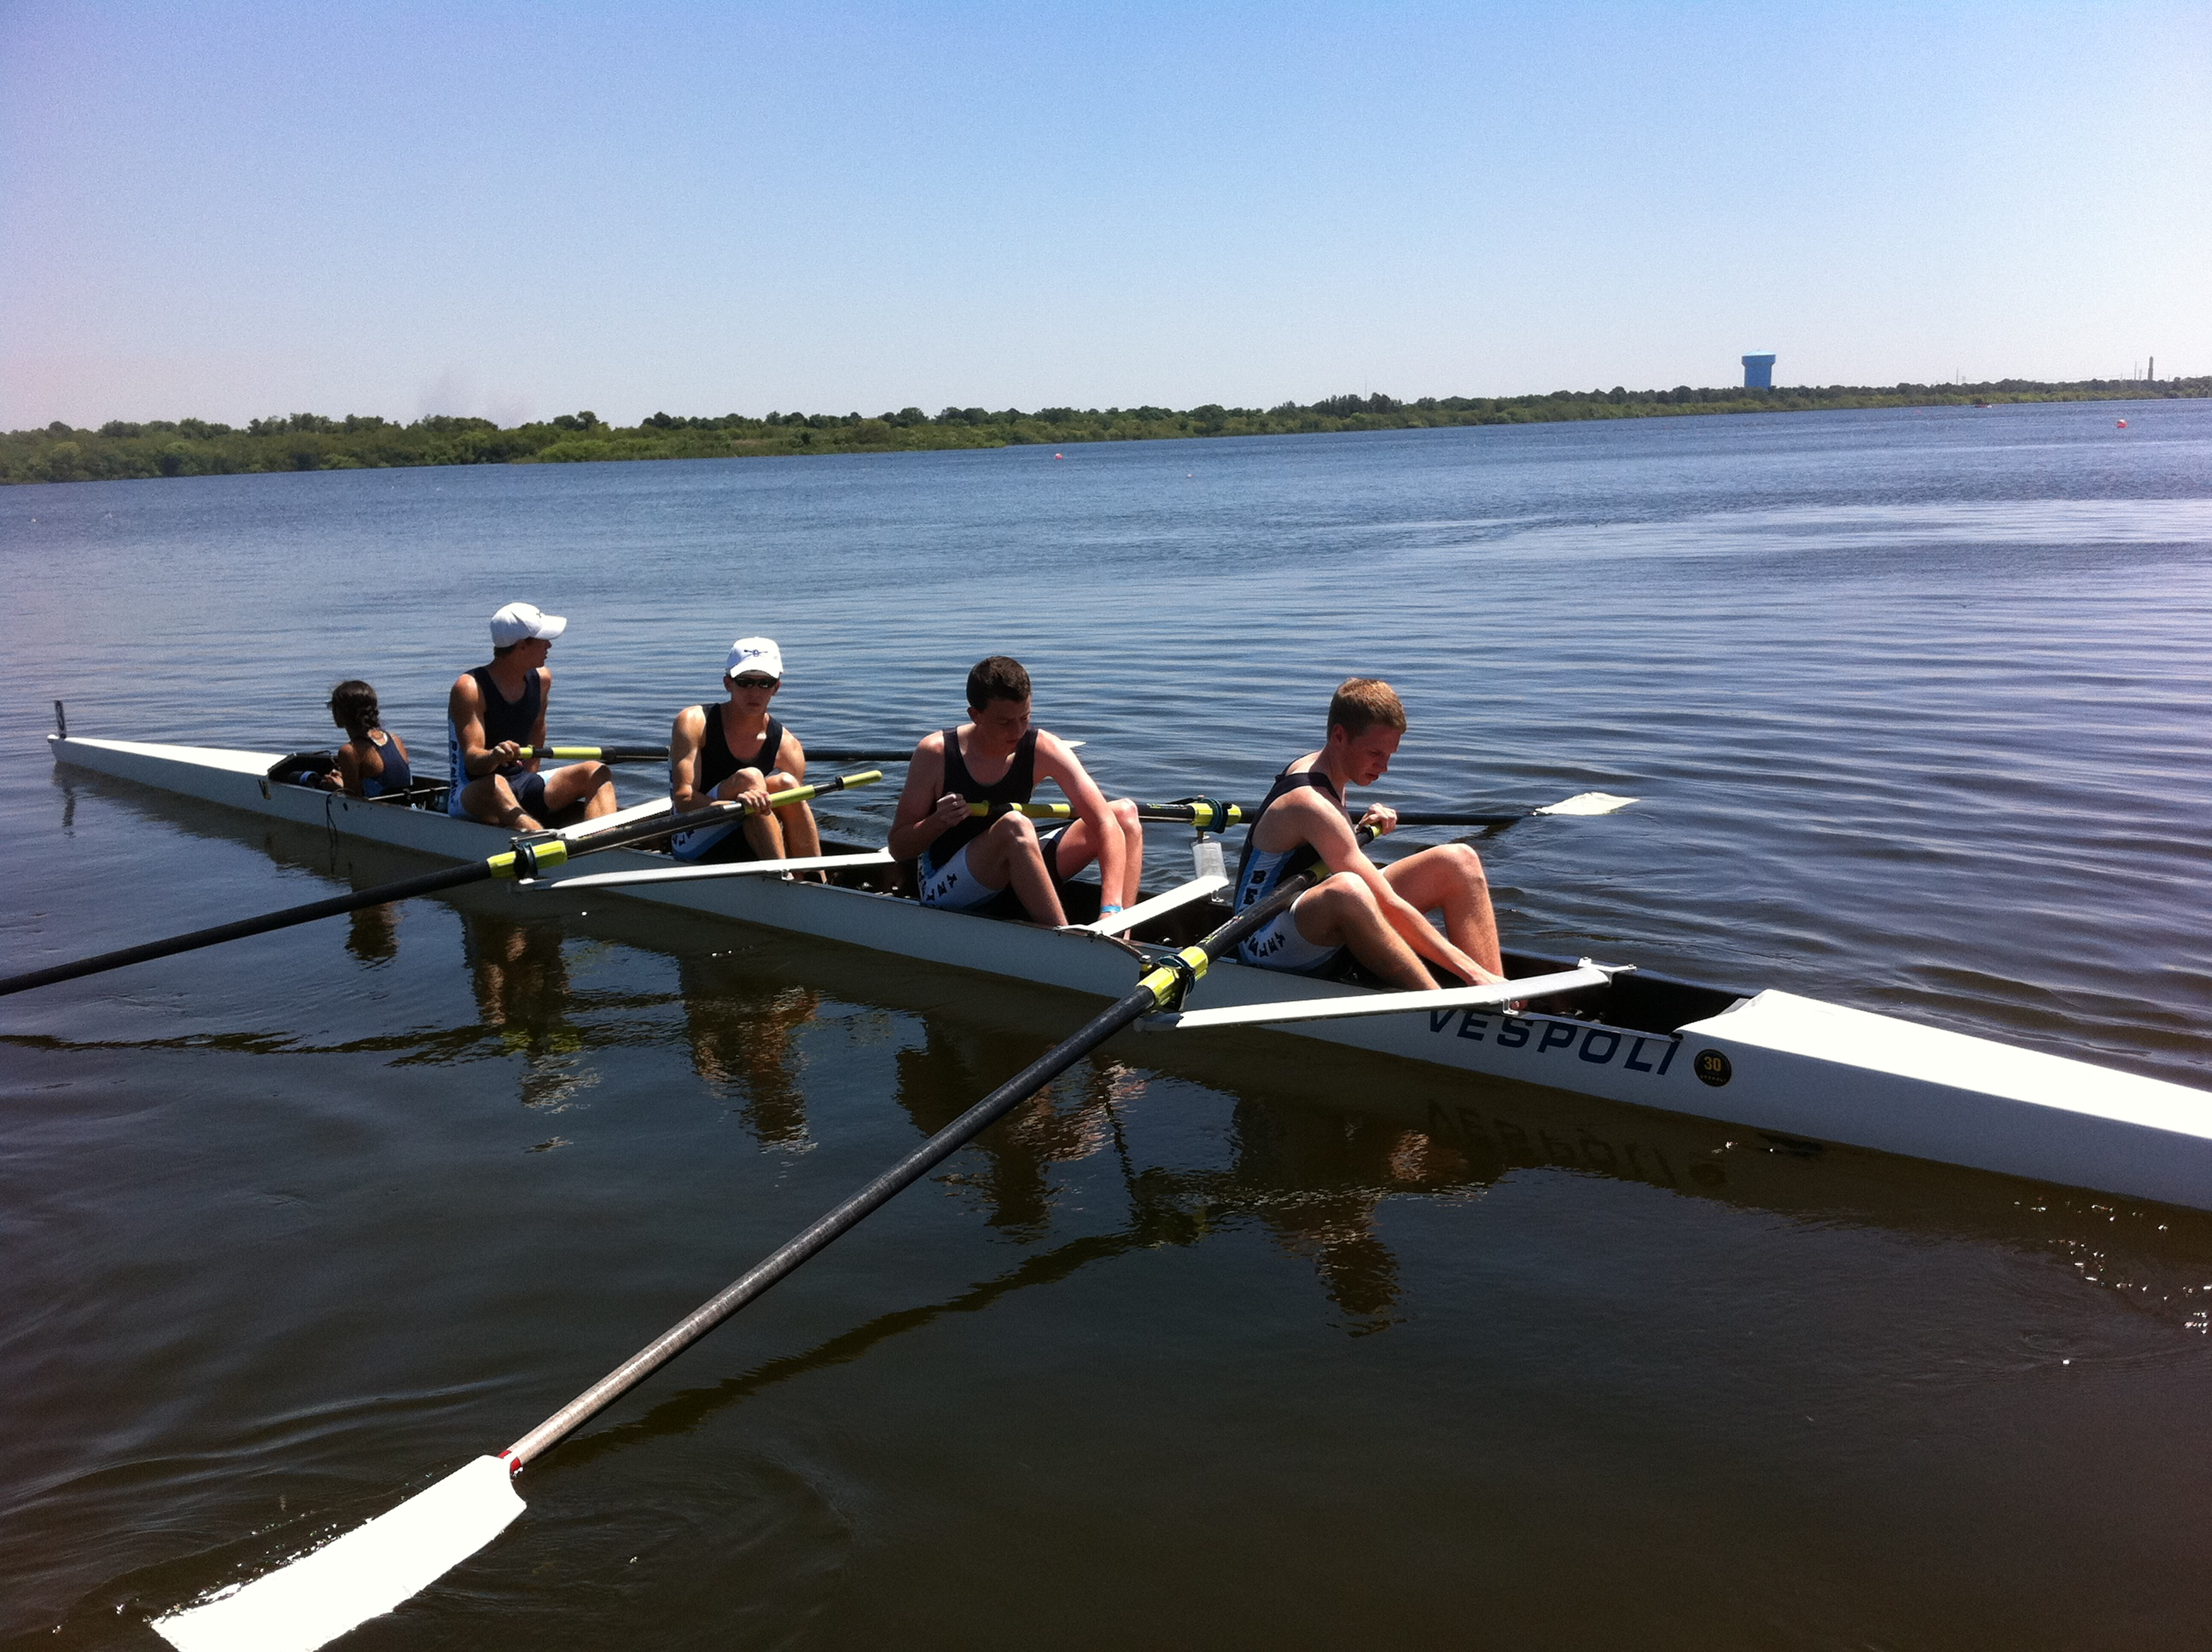 Heart Rate in Rowers and Non-Rowers